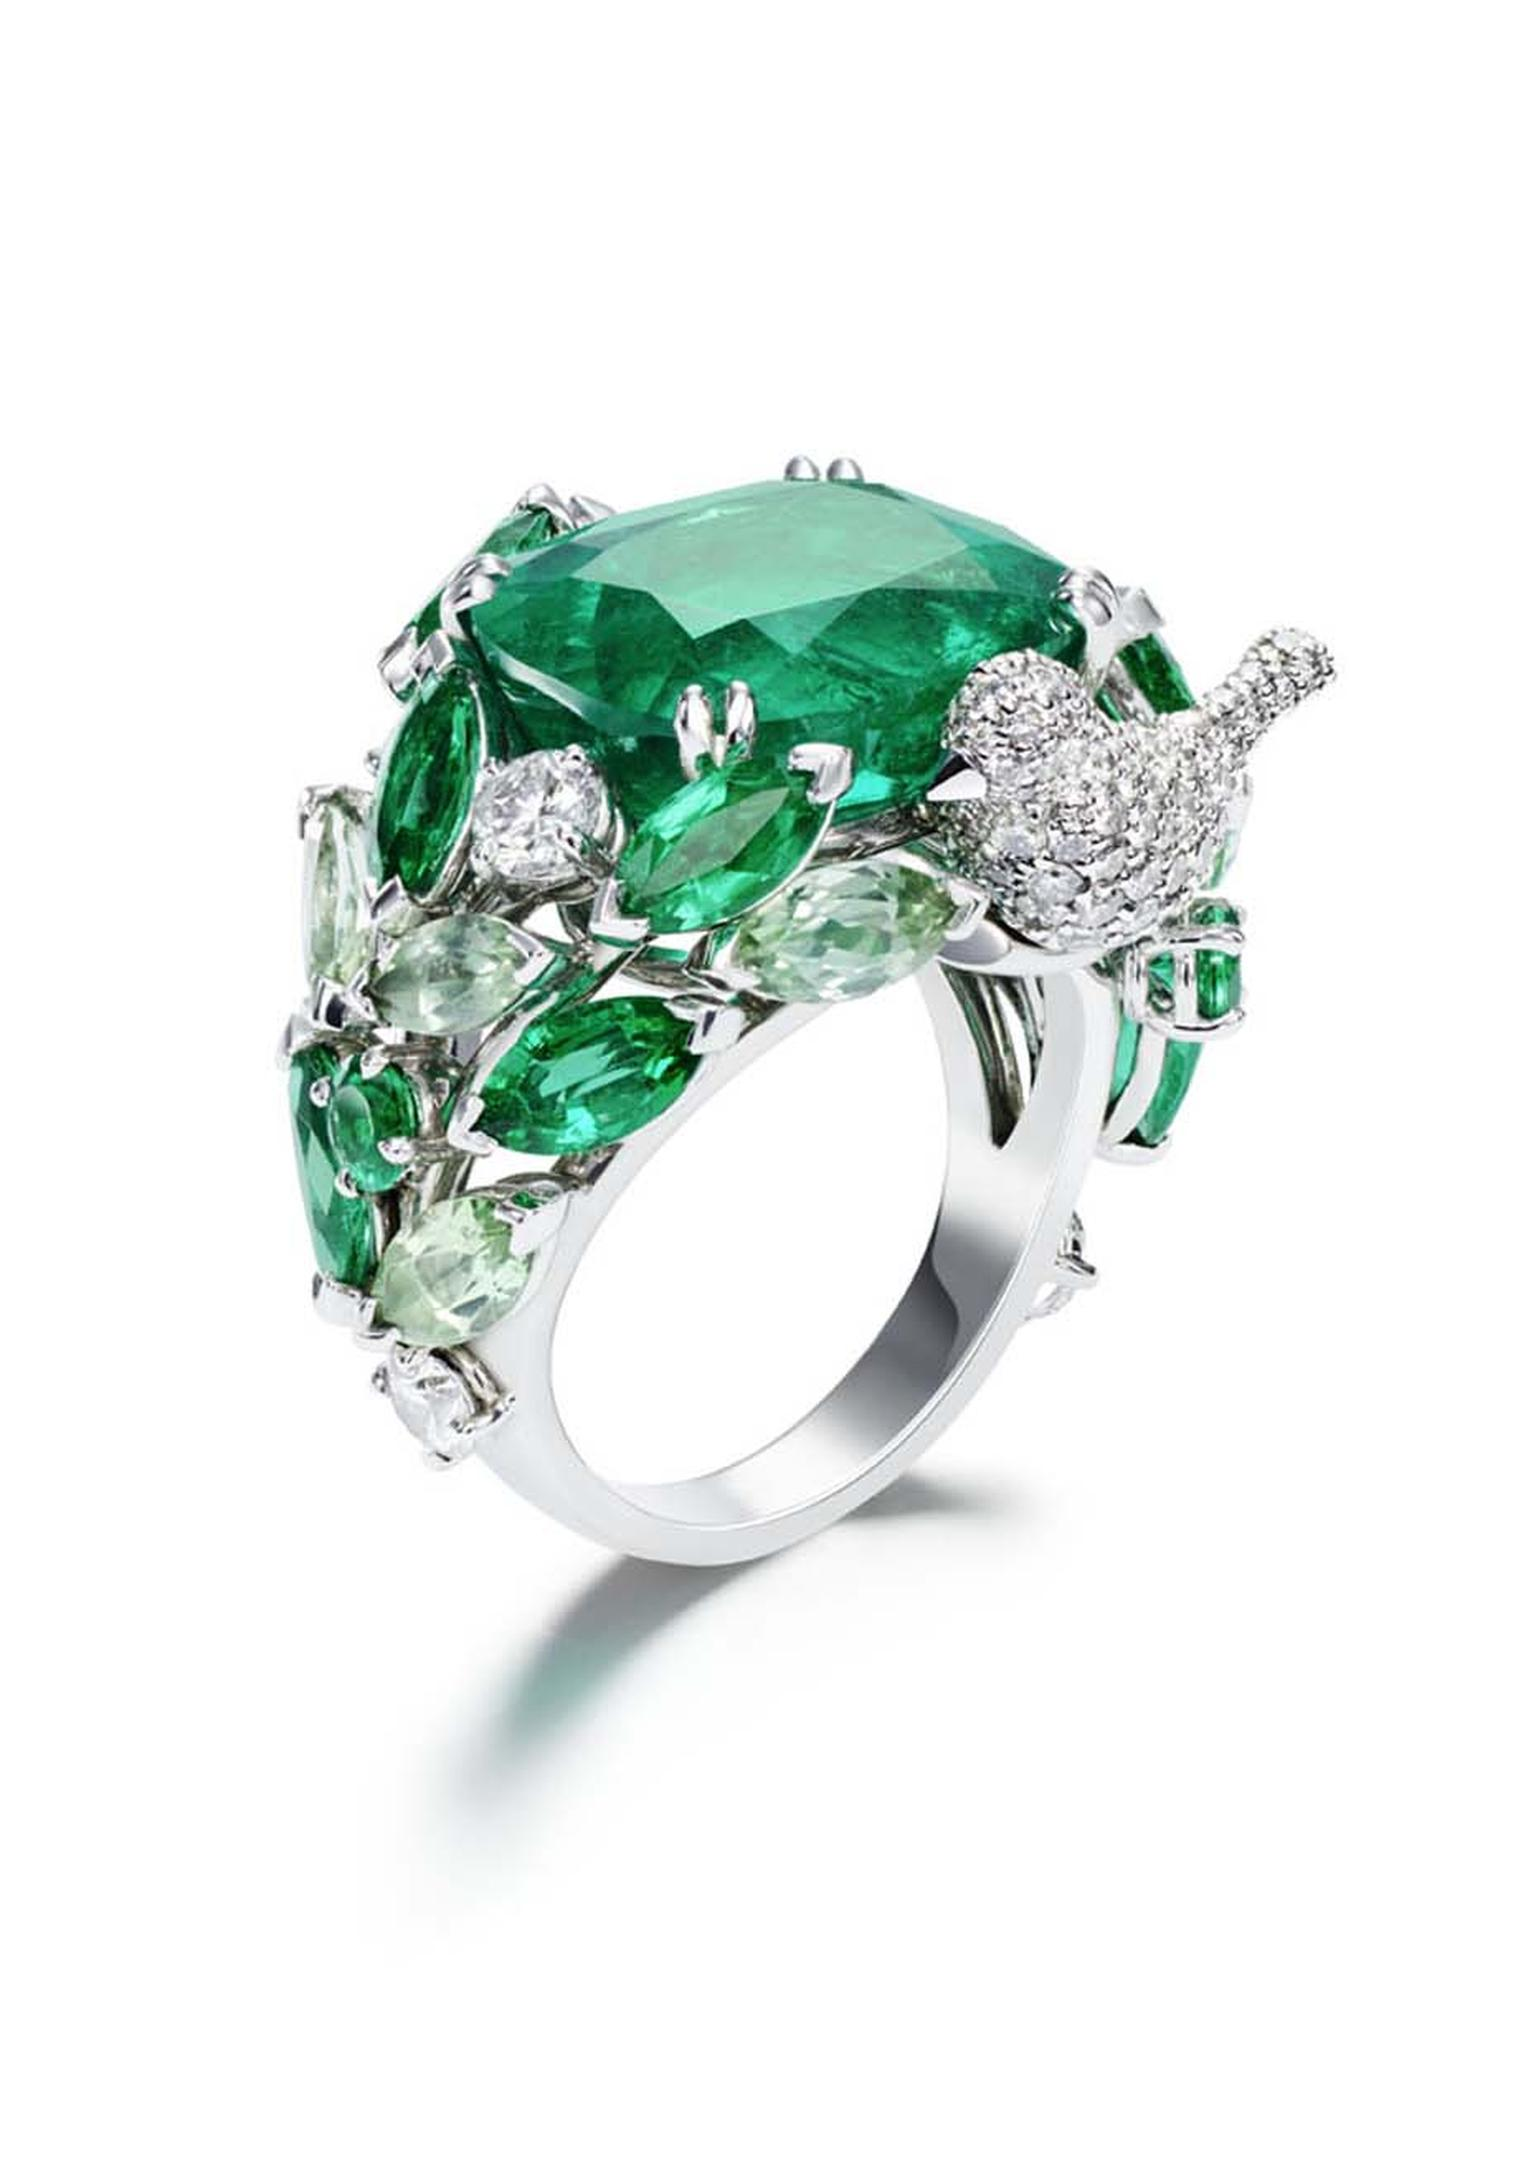 Piaget Rose Passion ring in white gold, set with diamonds and marquise cut and princess cut tourmalines